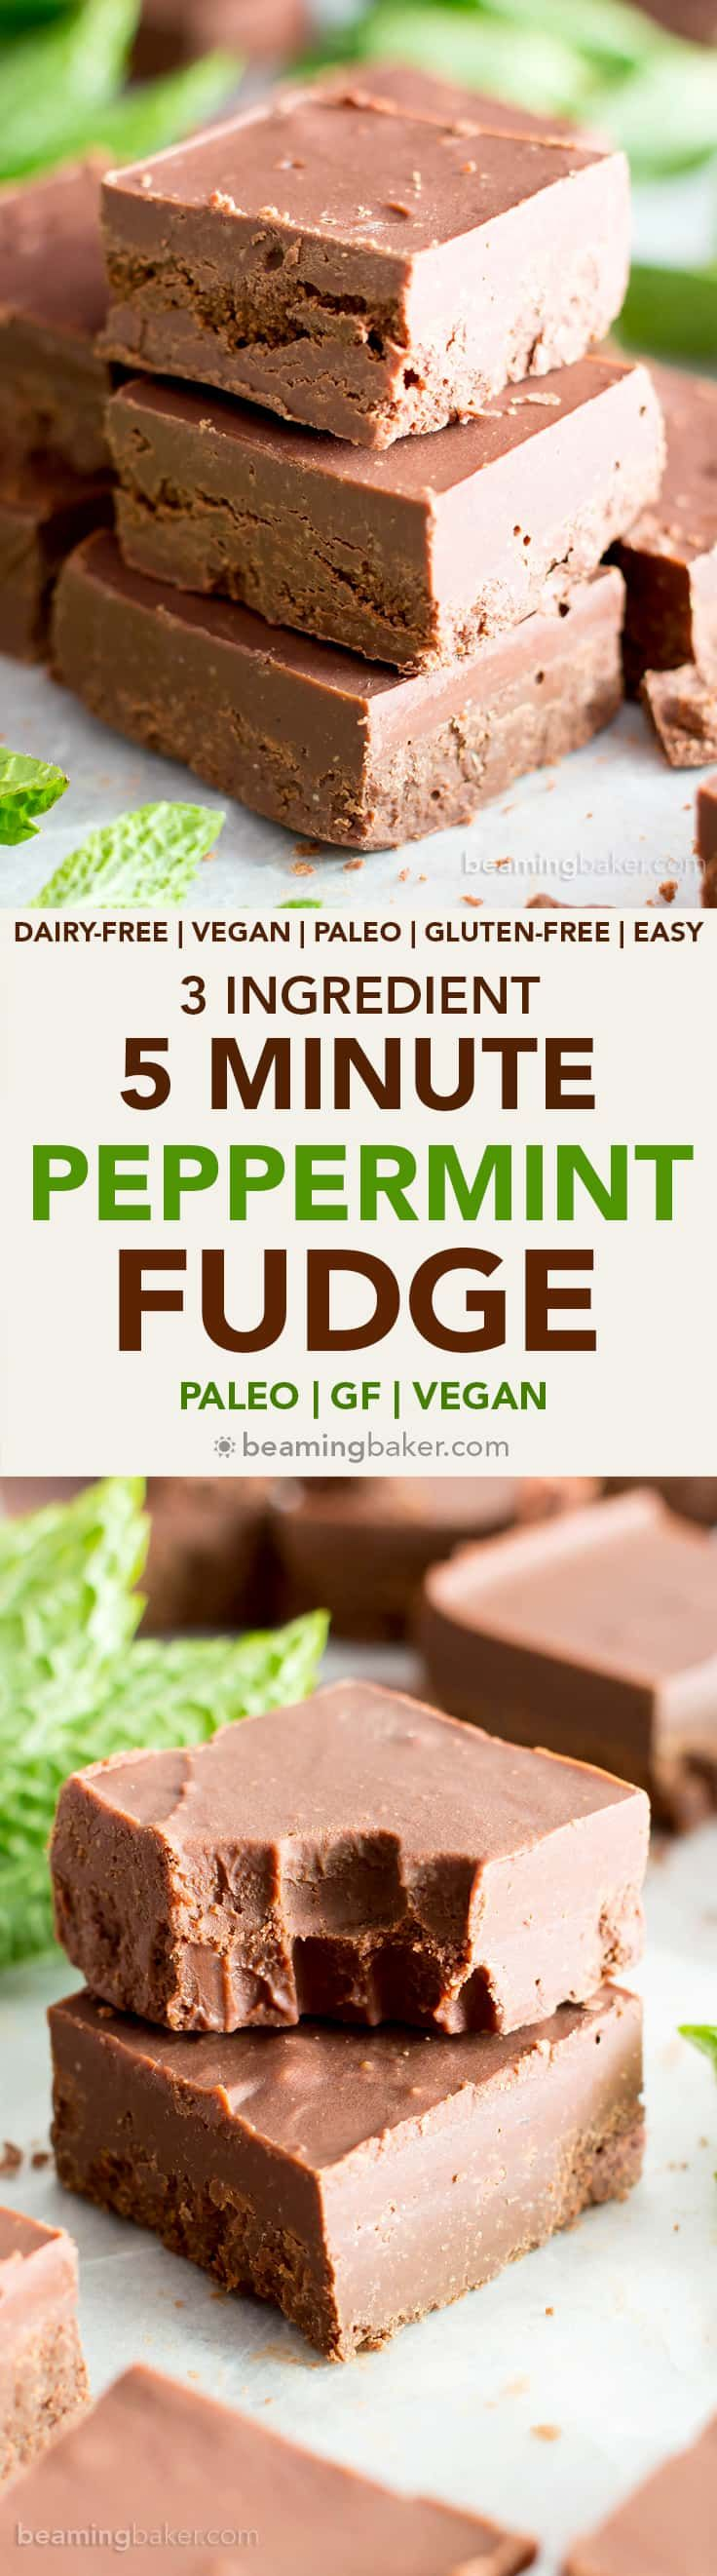 5 Minute Easy Peppermint Fudge (Paleo, Vegan, Gluten Free, Dairy-Free) - Beaming Baker